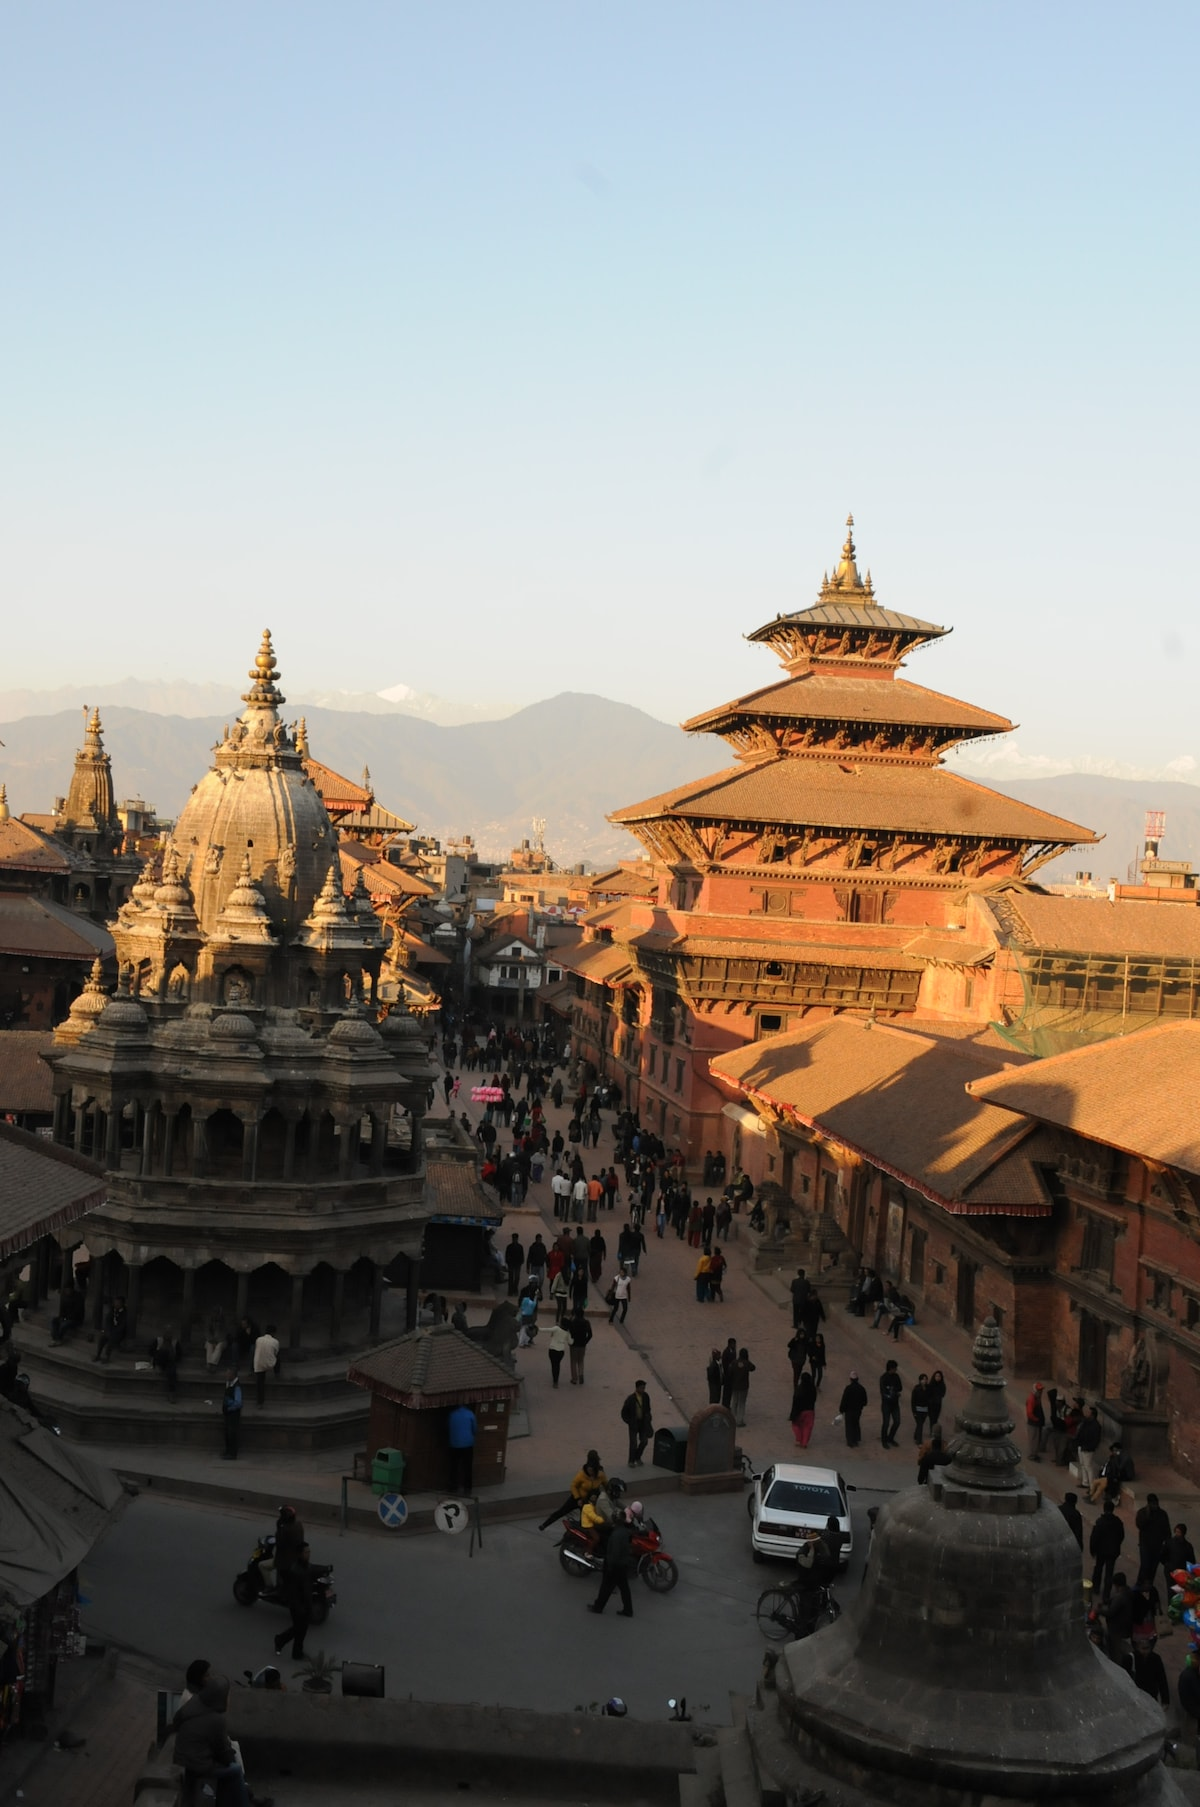 UNESCO World Heritage Site, 'Patan Durbar Square' and mountains, view from guest house.